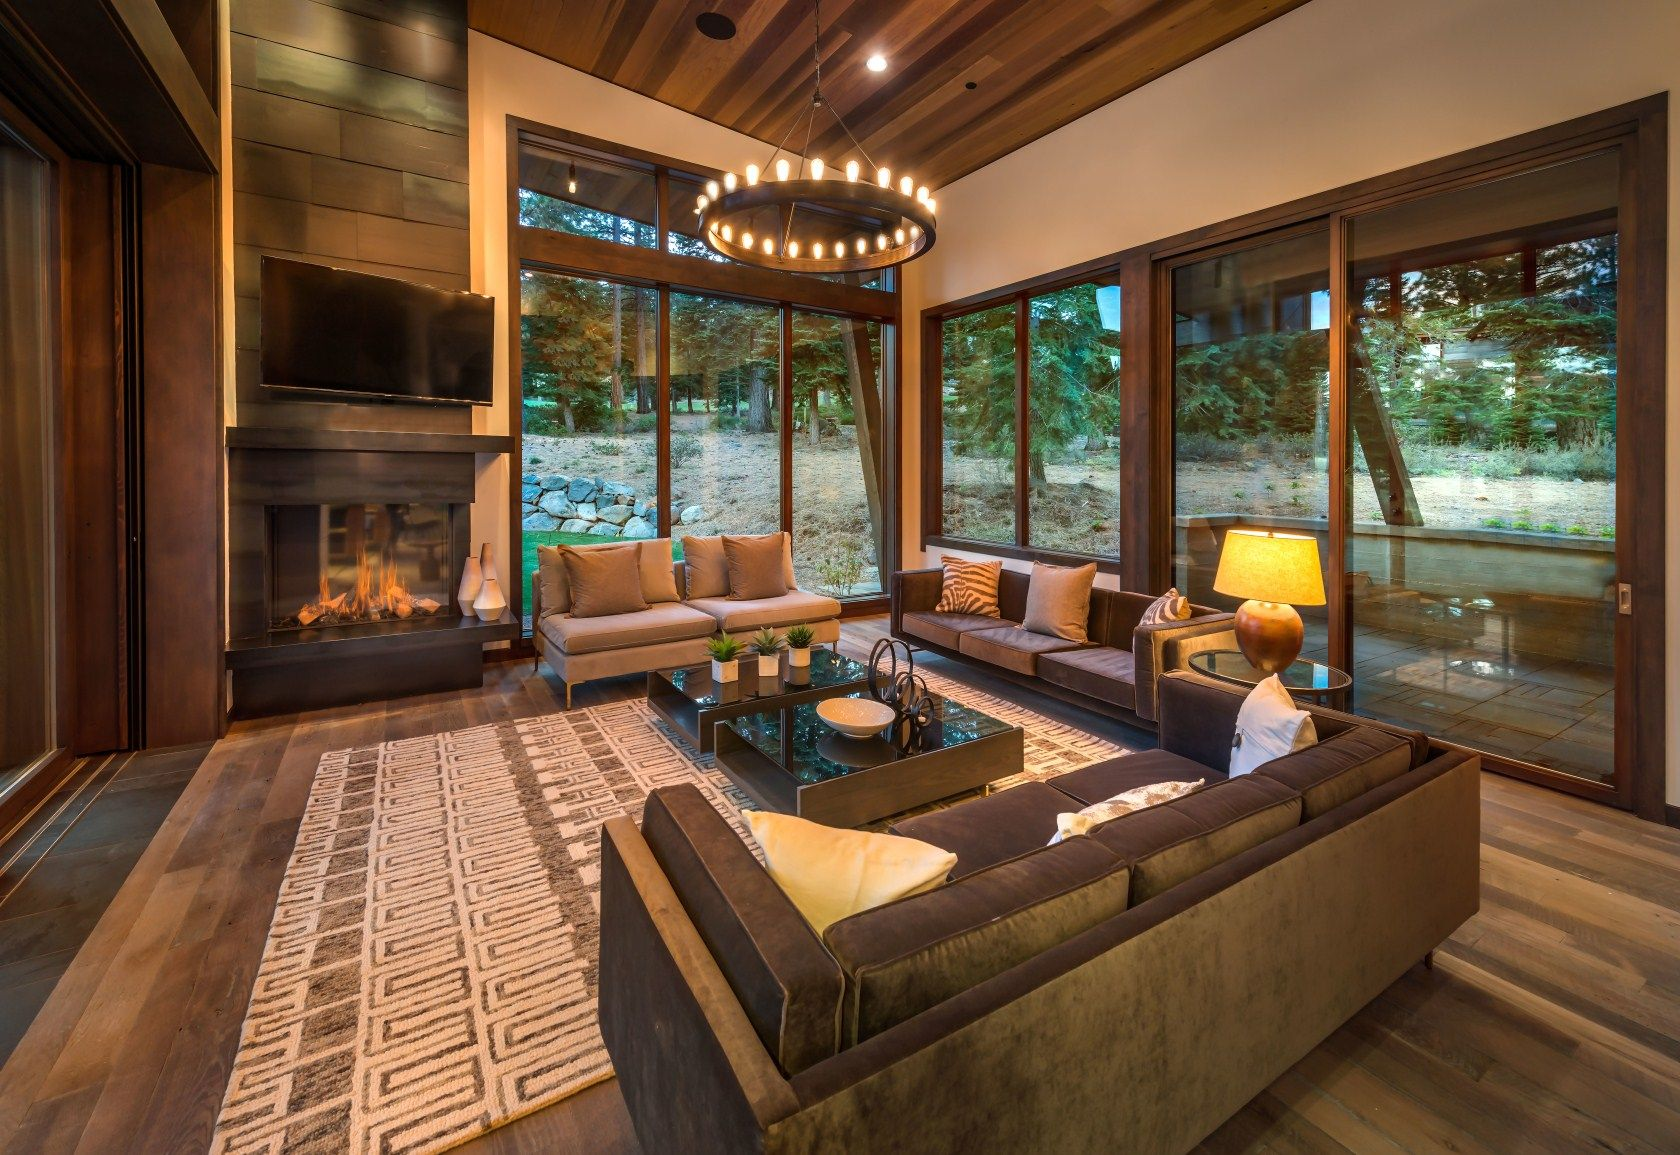 5 Living Rooms With Built In Fireplaces, Home & Garden Design